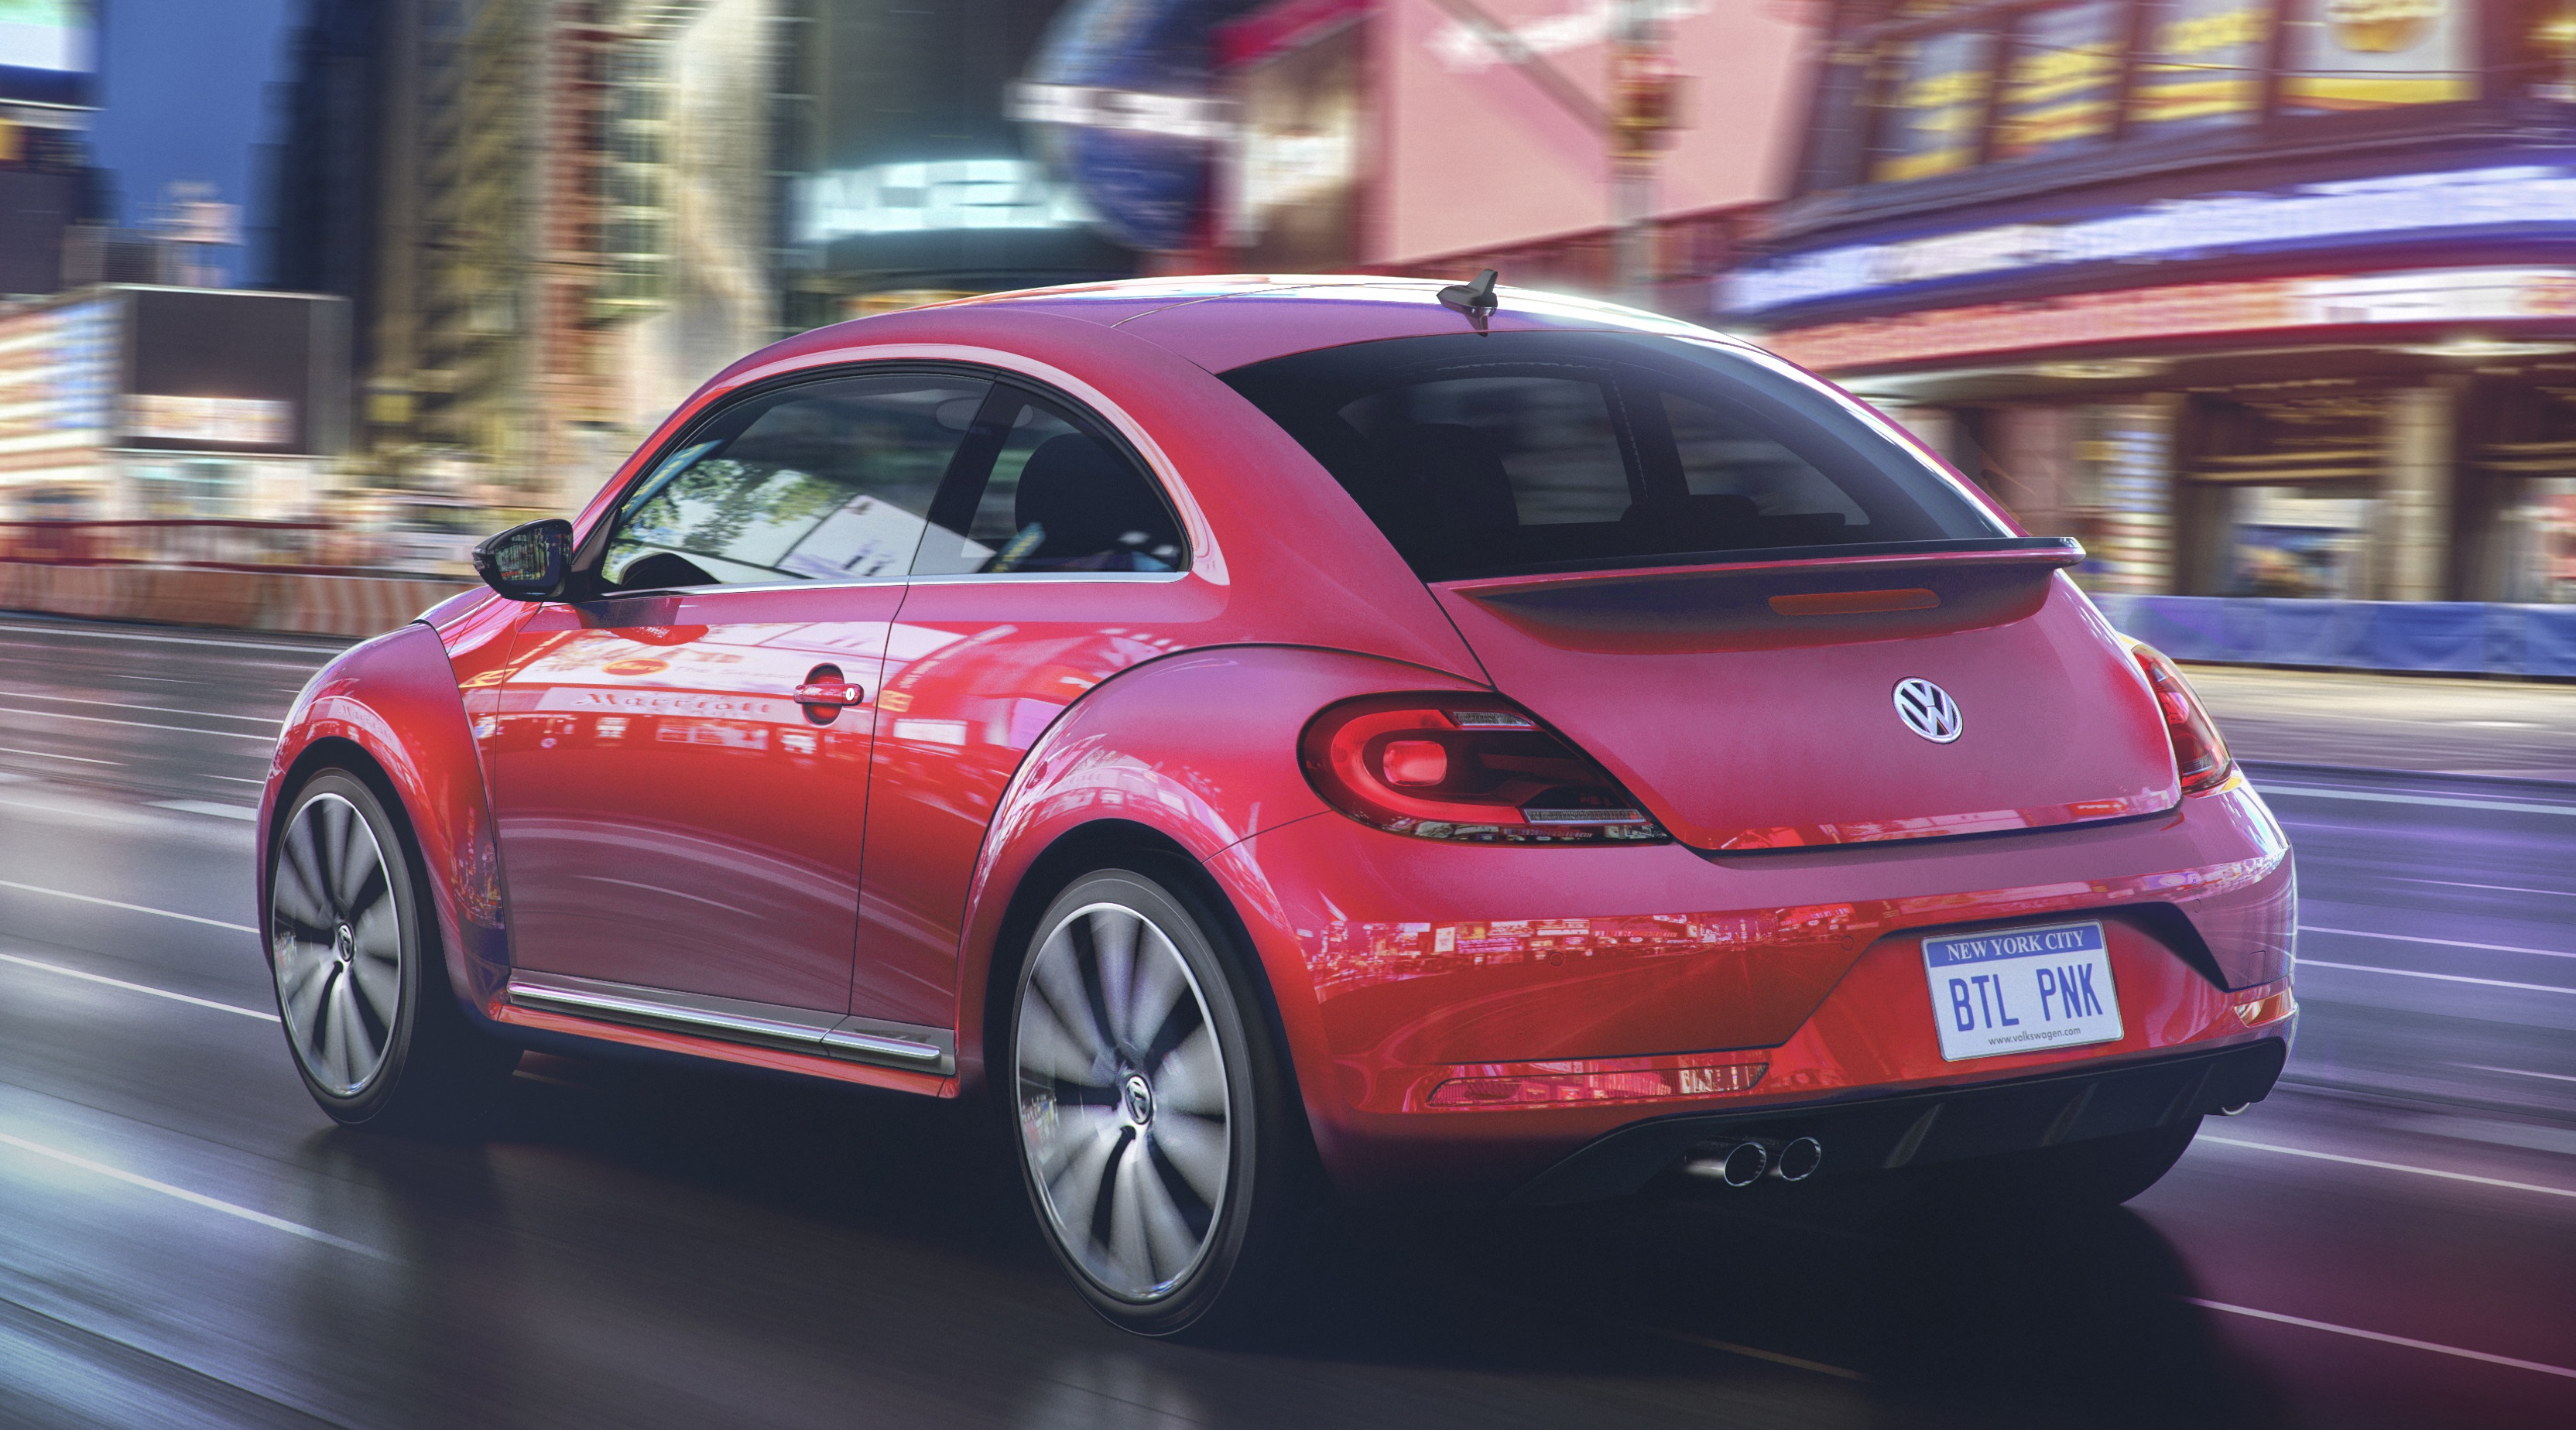 2017 Volkswagen Beetle Convertible Review Best Car Site For Women